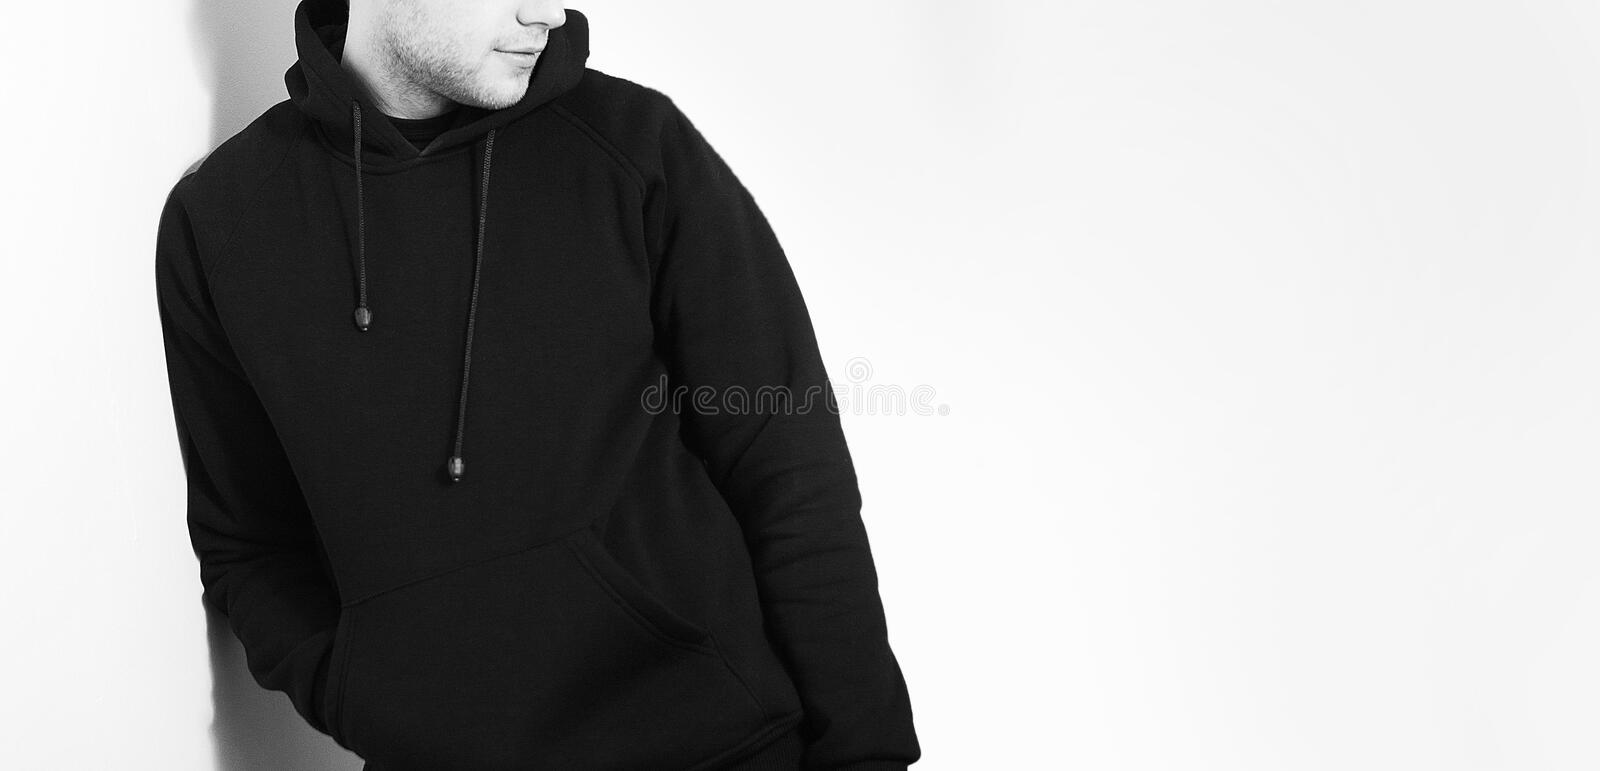 The guy in the Blank black hoodie, sweatshirt, stand, smiling on stock photo